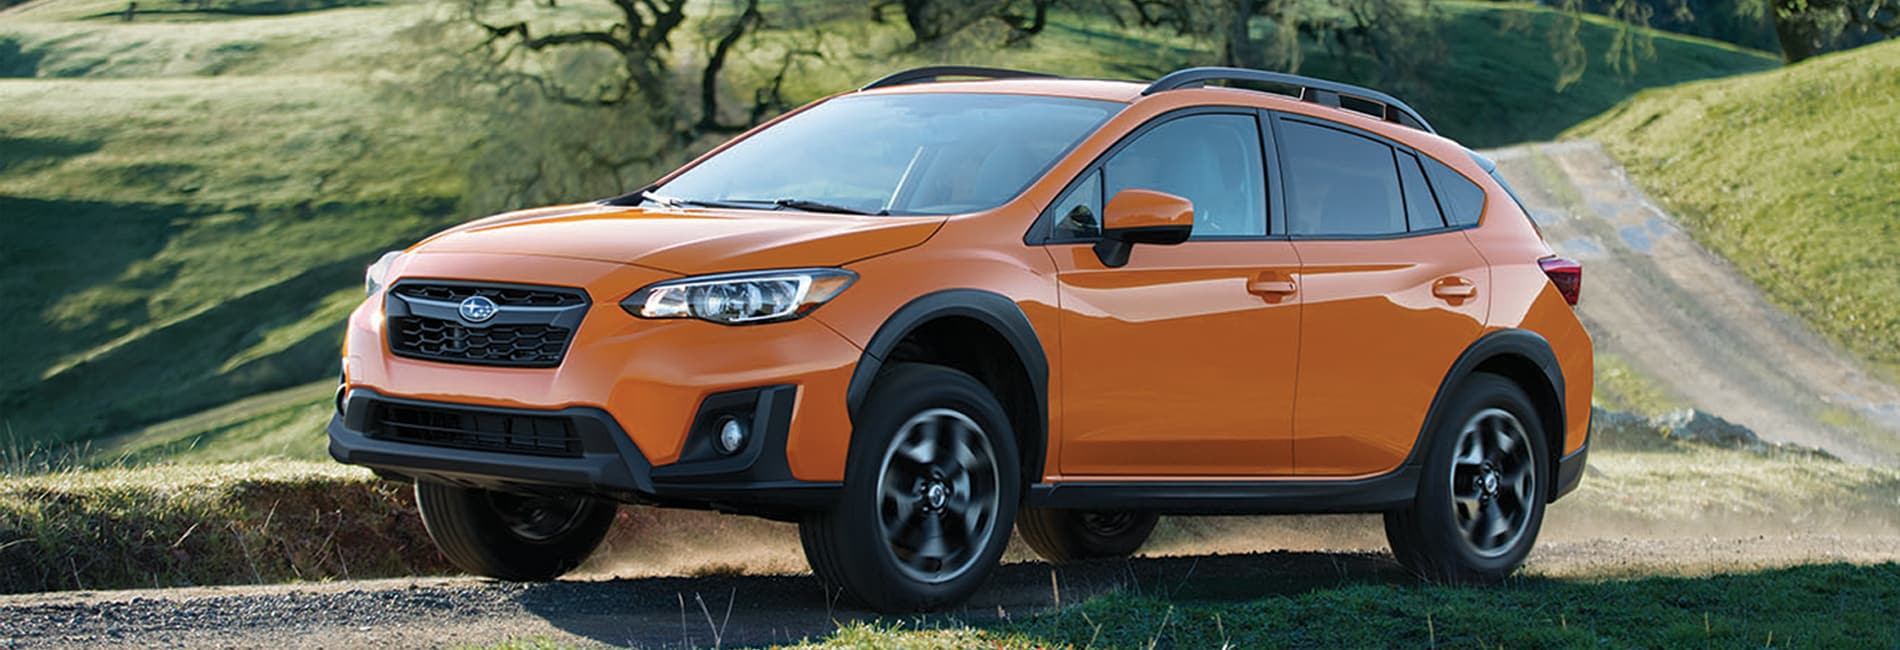 2018 Subaru Crosstrek Exterior Features